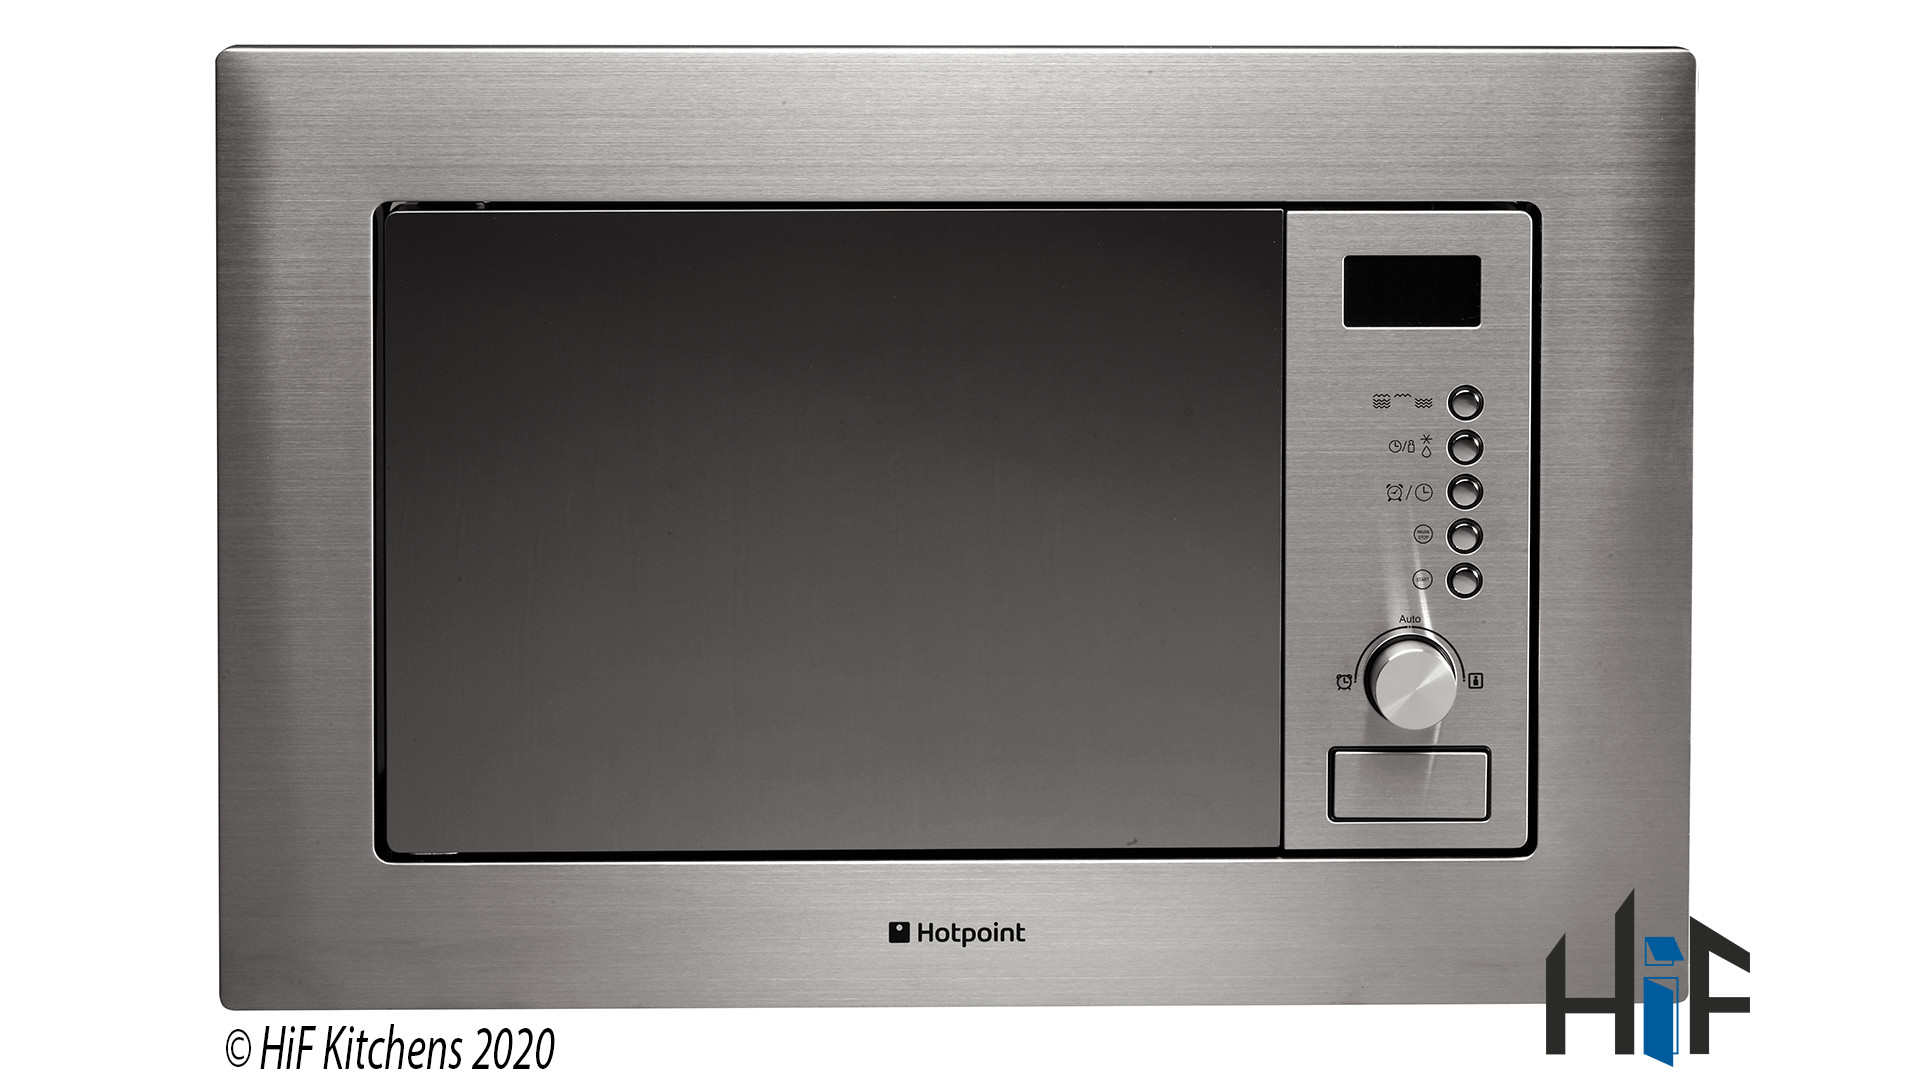 Hotpoint Newstyle MWH 122.1 X Built-In Microwave